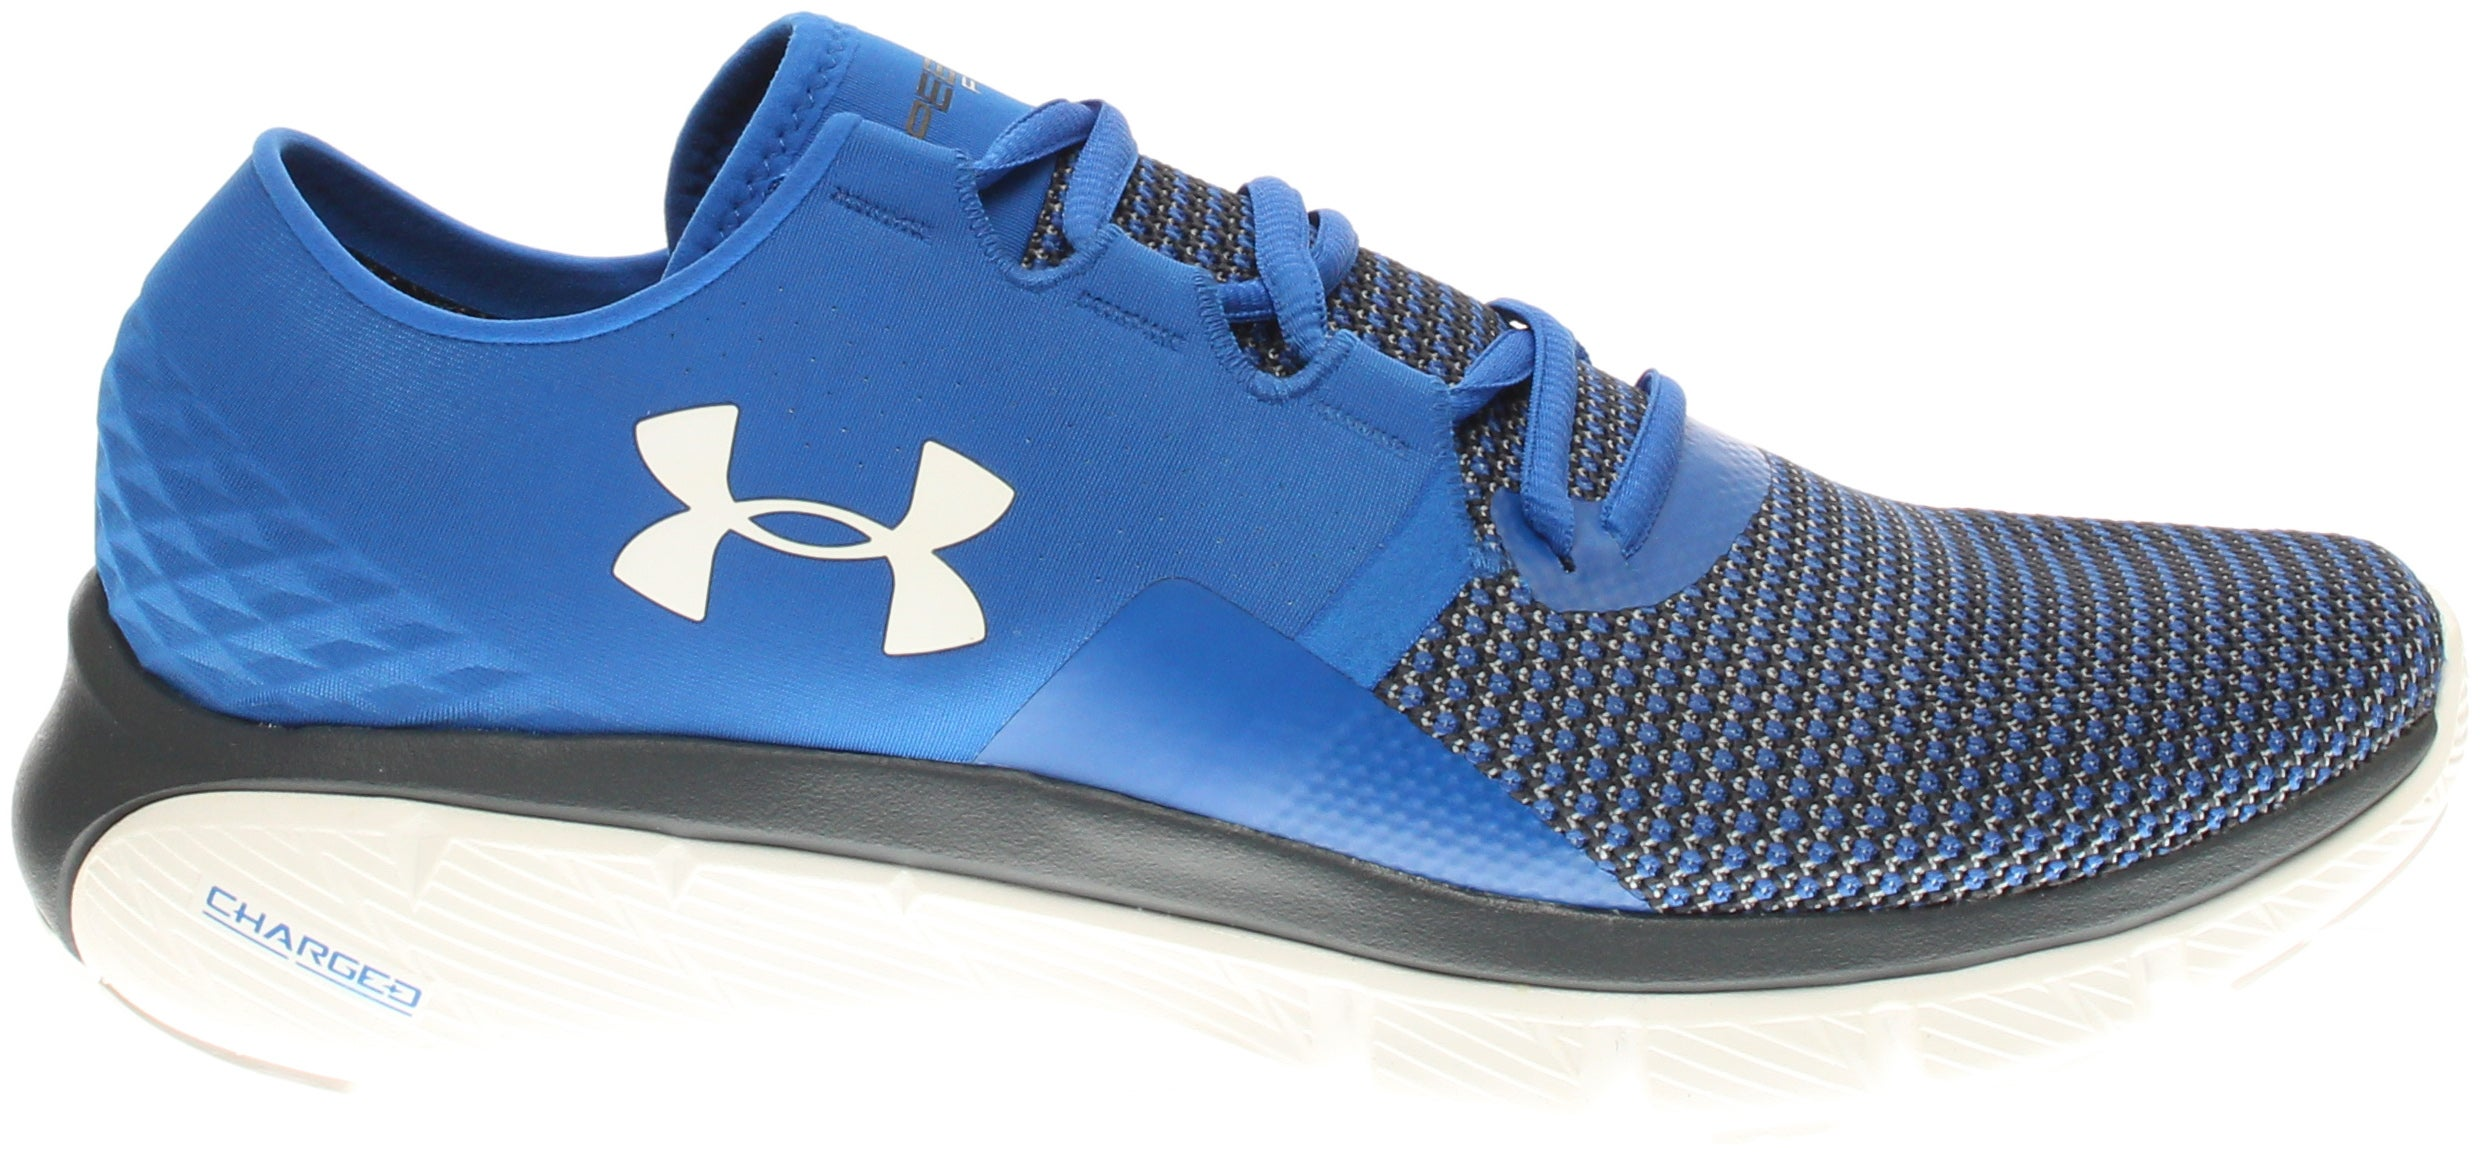 Under Armour Speedform Fortis 2 Blue - Mens  - Size 8.5